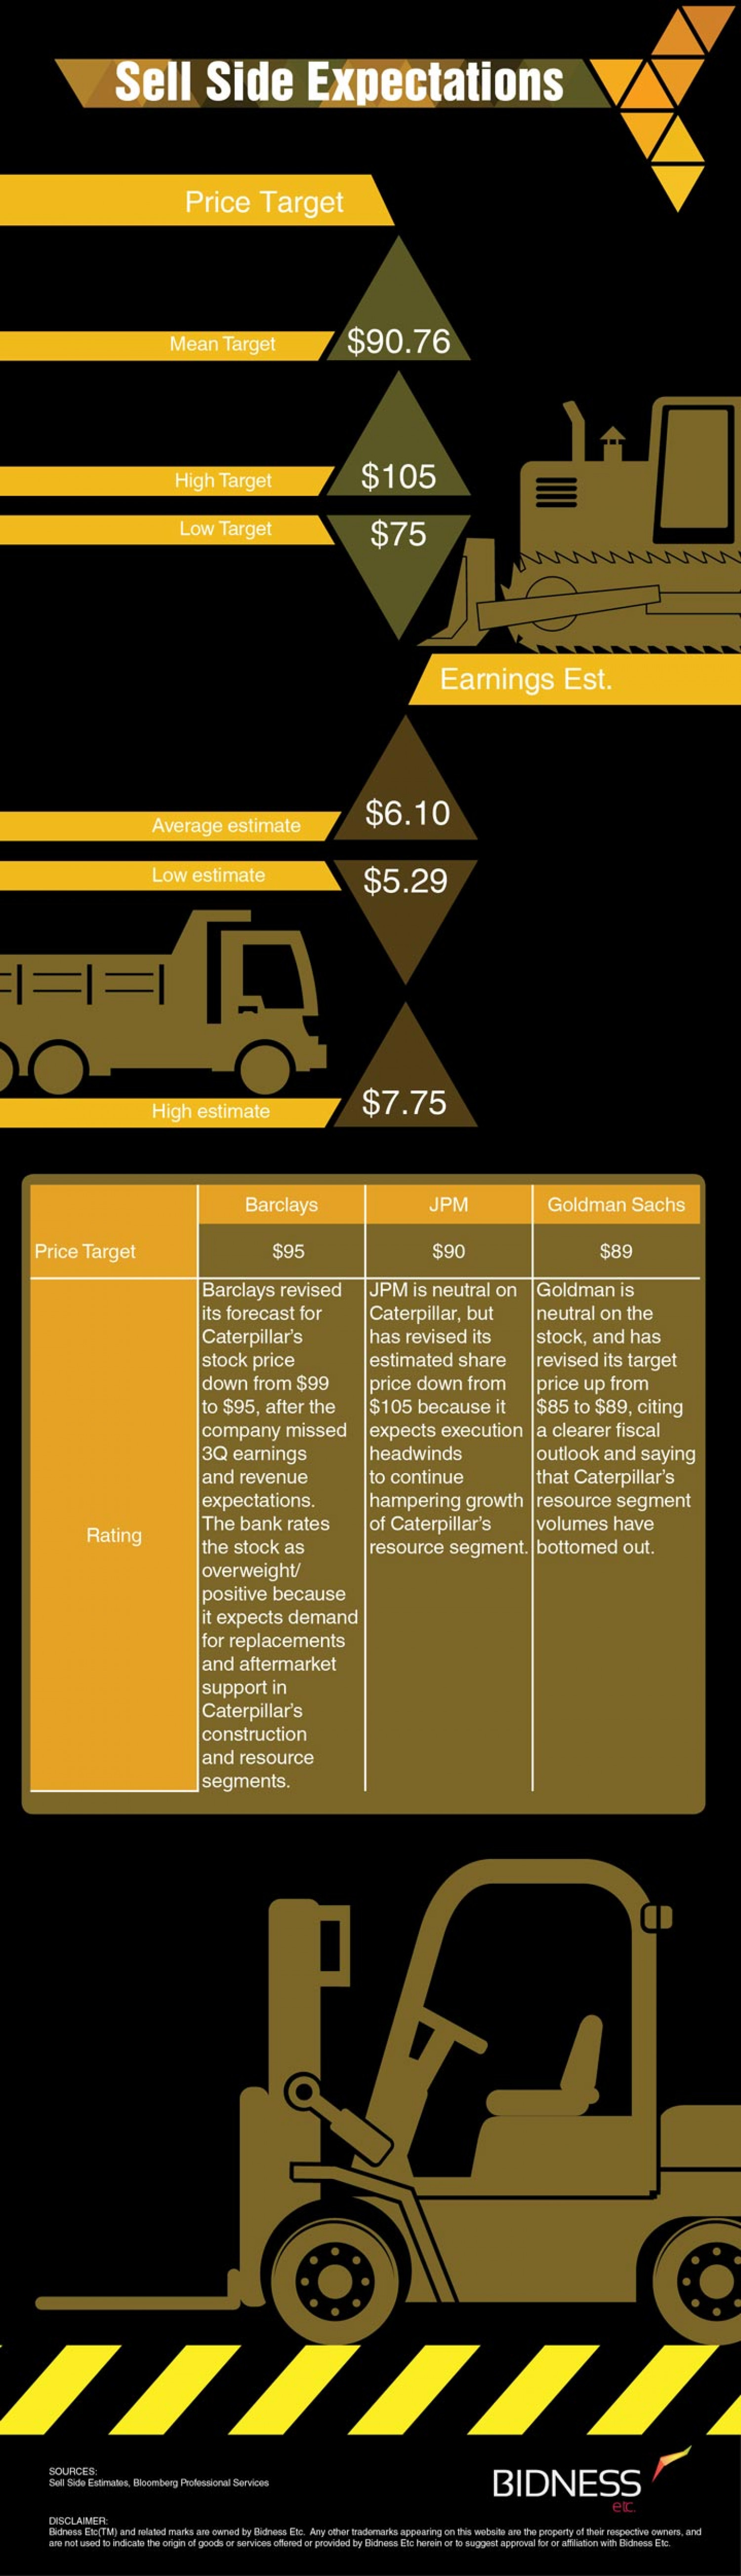 Caterpillar (CAT) Sell-Side Expectations Infographic